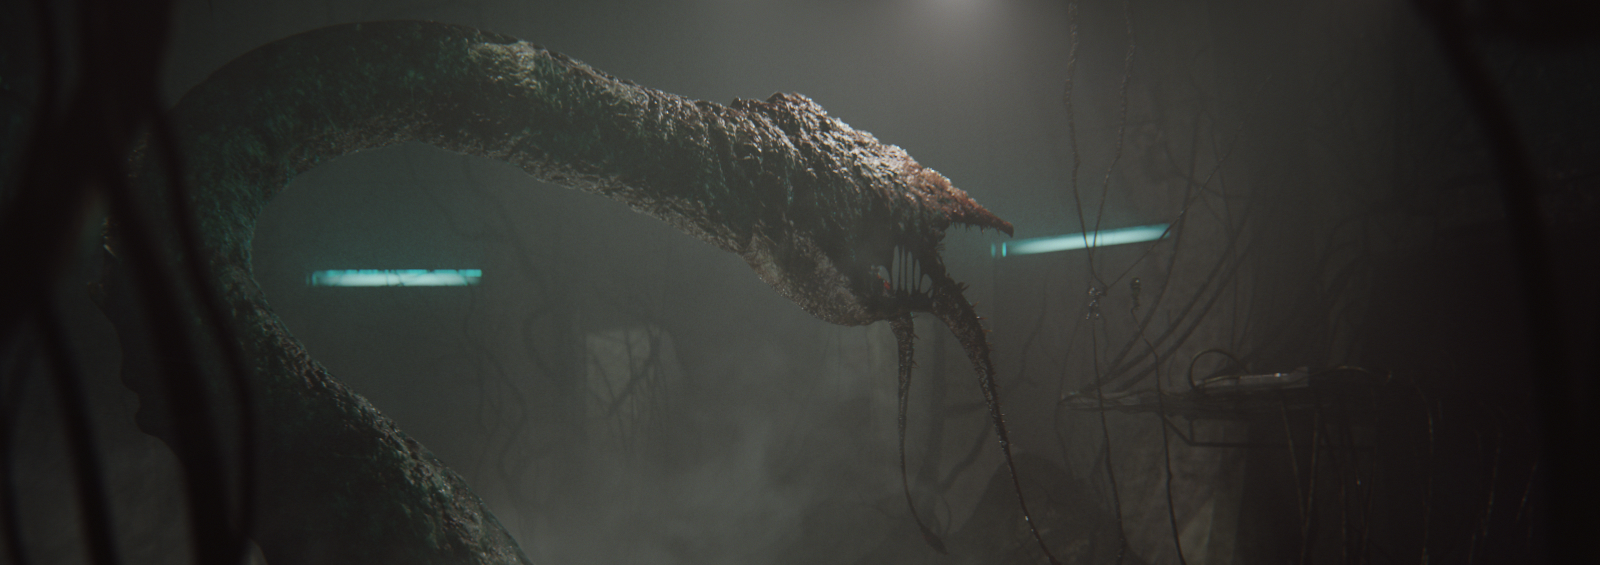 GRAVEMIND - The Gravemind is the compound intelligence that controls the Flood, sharing a consciousness with all its parts, including those entities that the Flood has consumed.